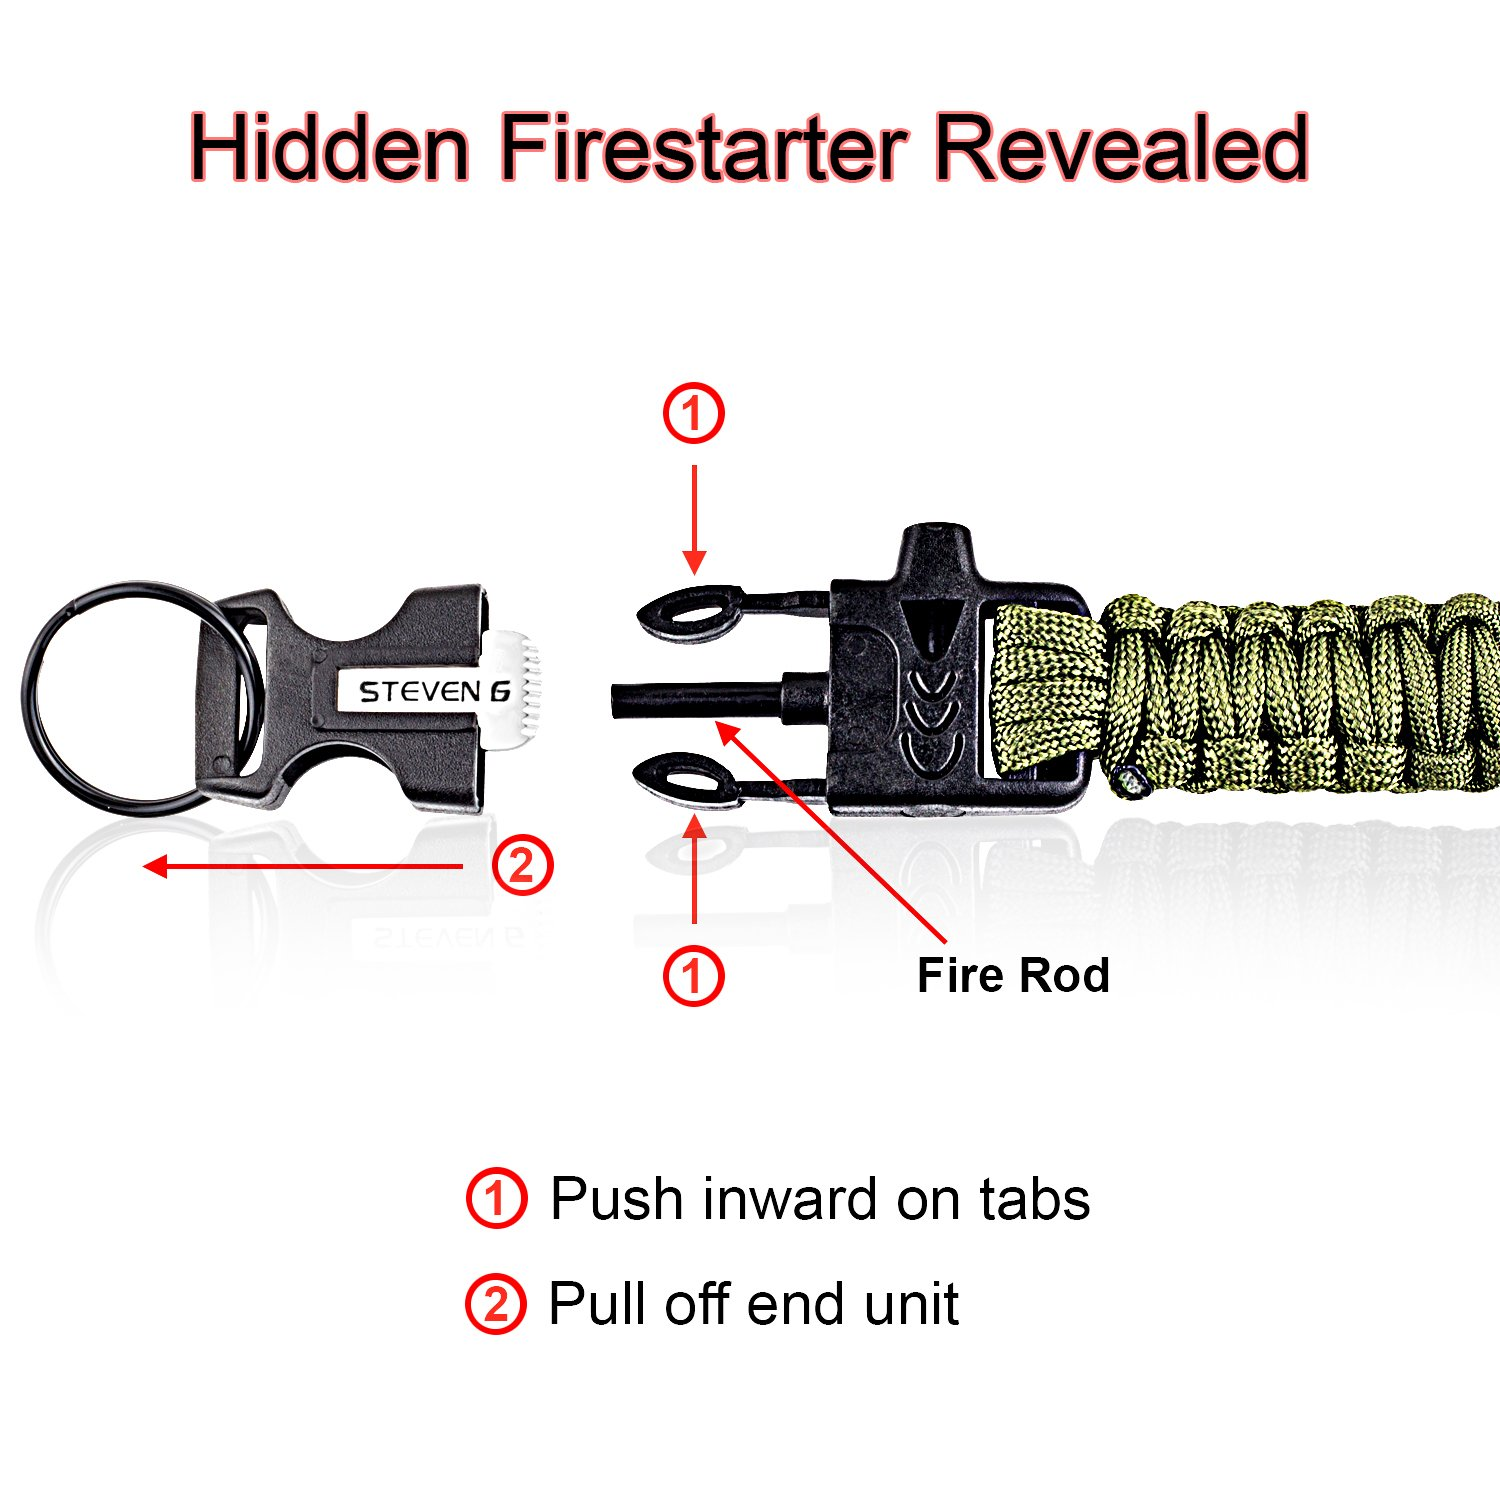 Steven G Paracord Carabiner Survival Keychain Firestarter Whistle For Hiking, Camping, Hunting, Fishing, Boy Scouts, Outdoor Emergency Best Quality Army Green